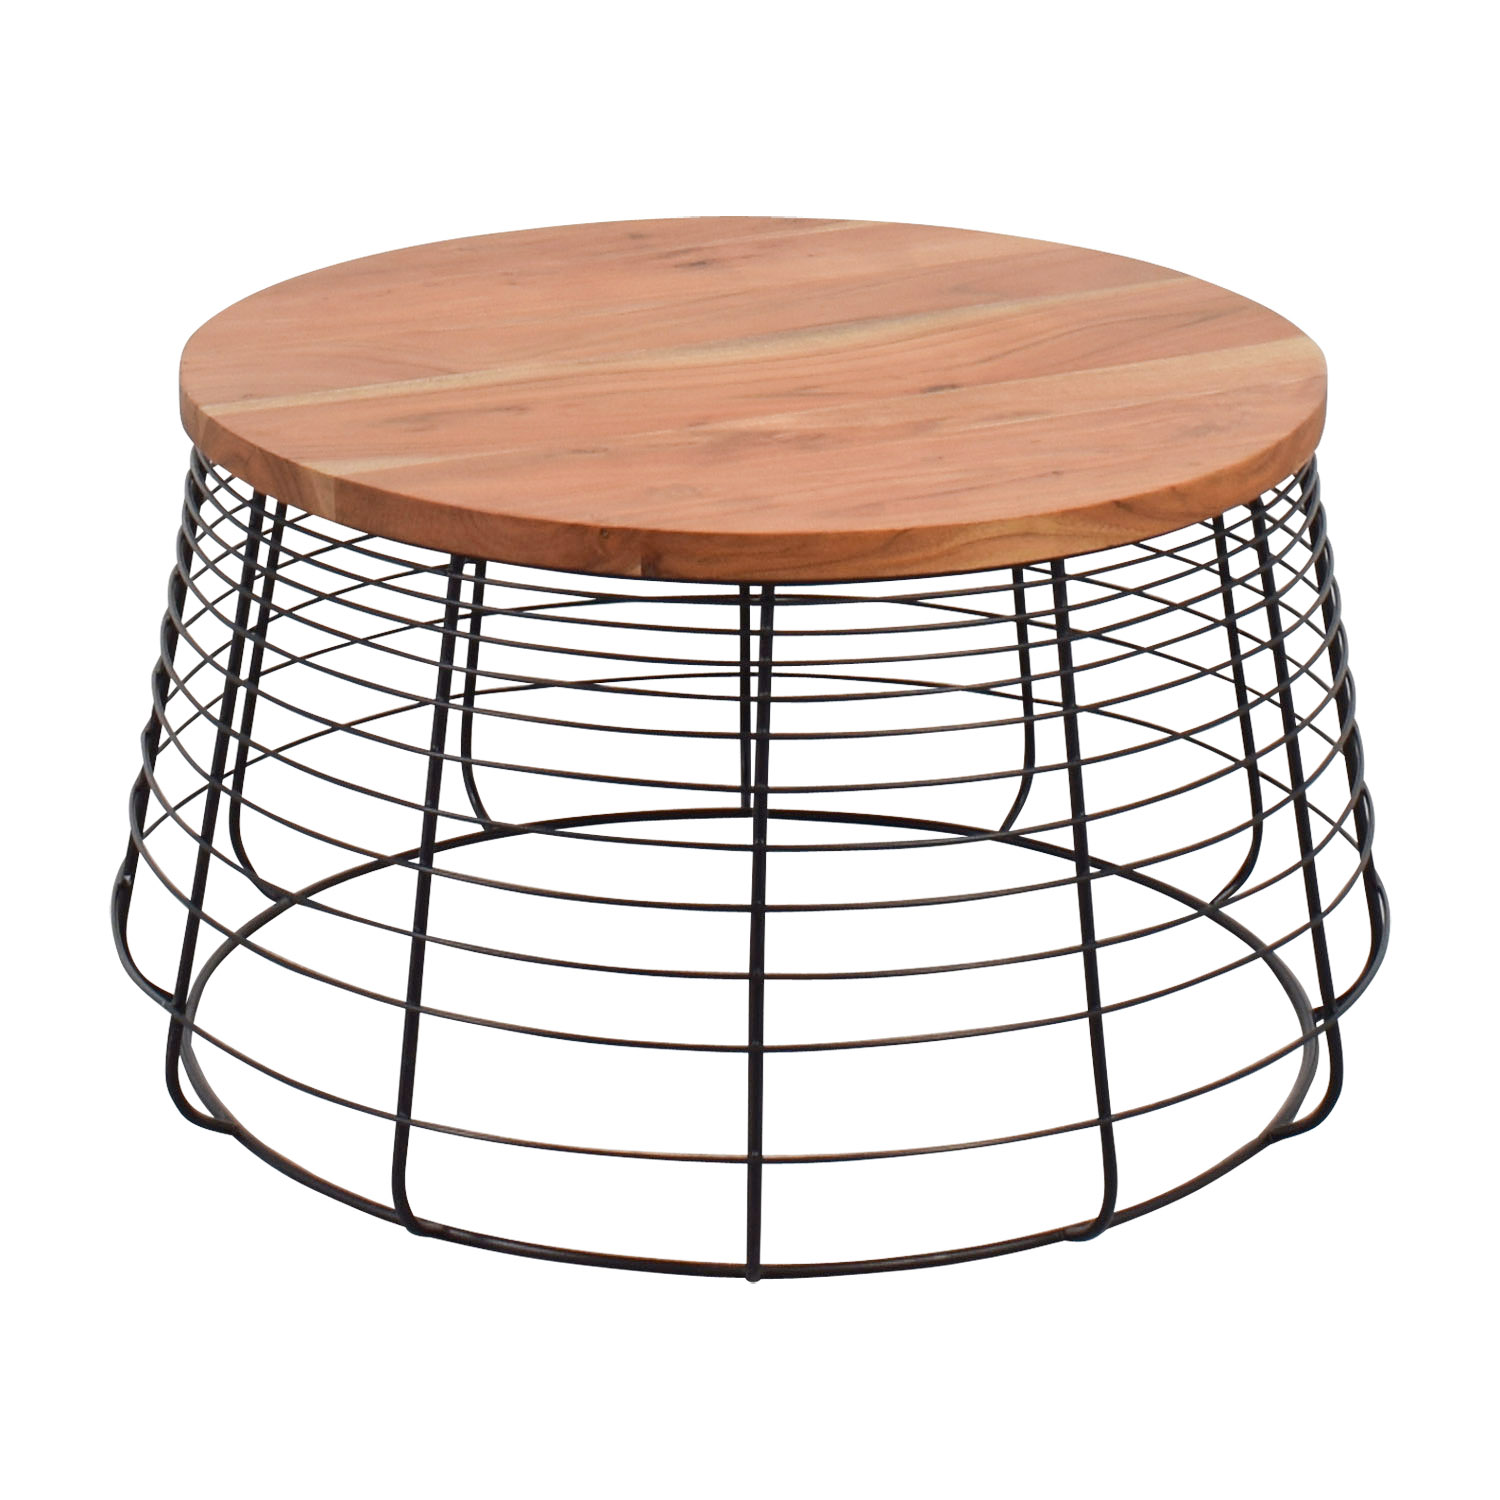 buy CB2 Apis Round Coffee Table CB2 Tables